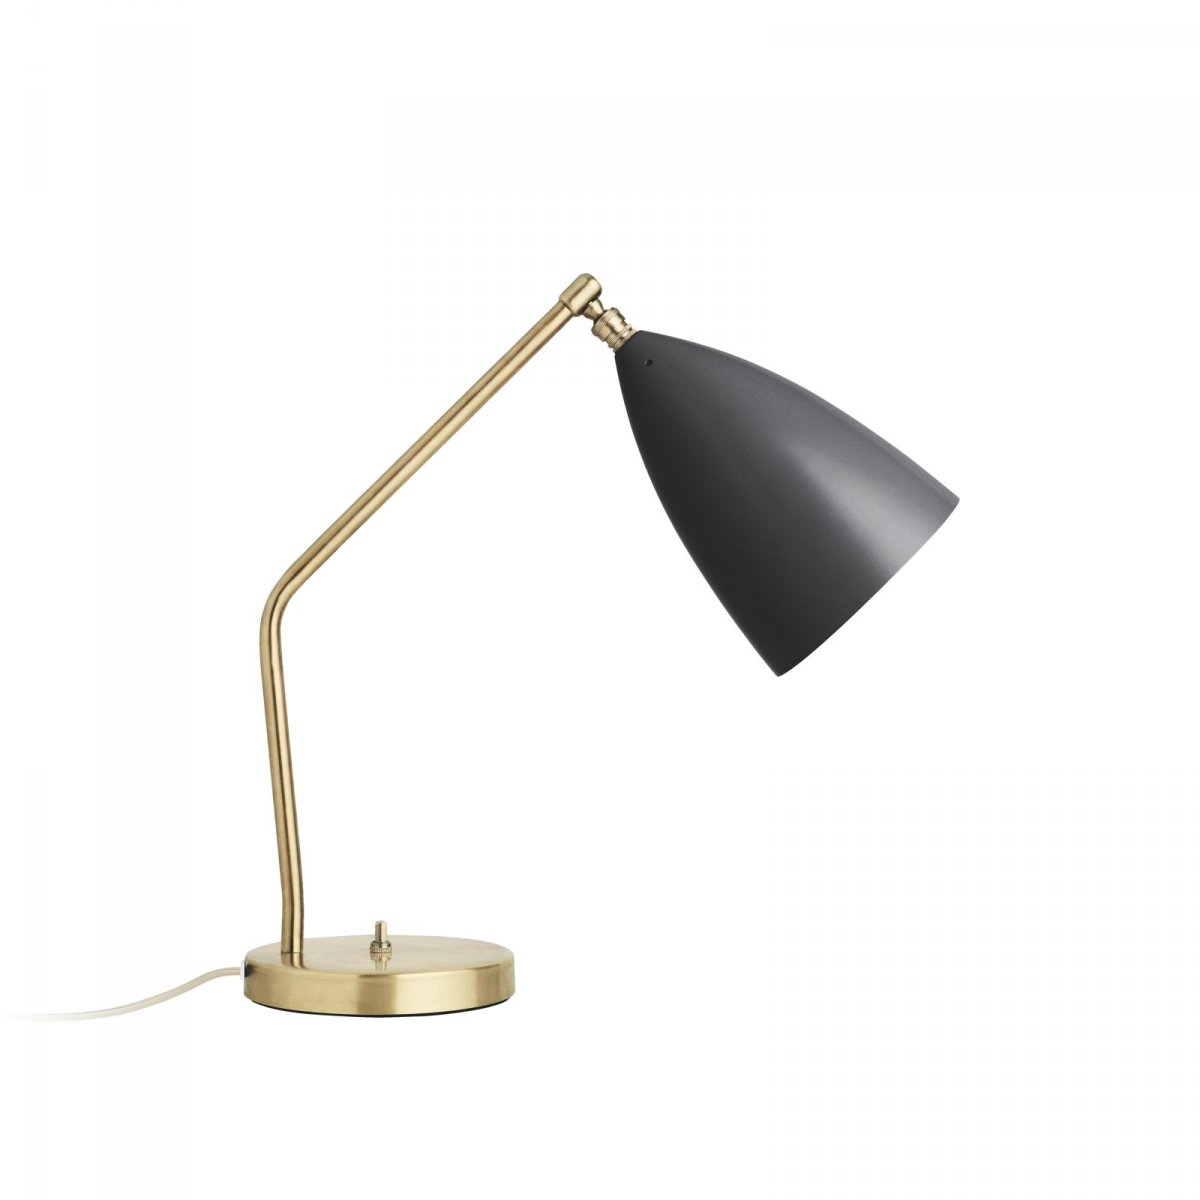 Grossman Gräshoppa Task Table Lamp, jet black, side view.